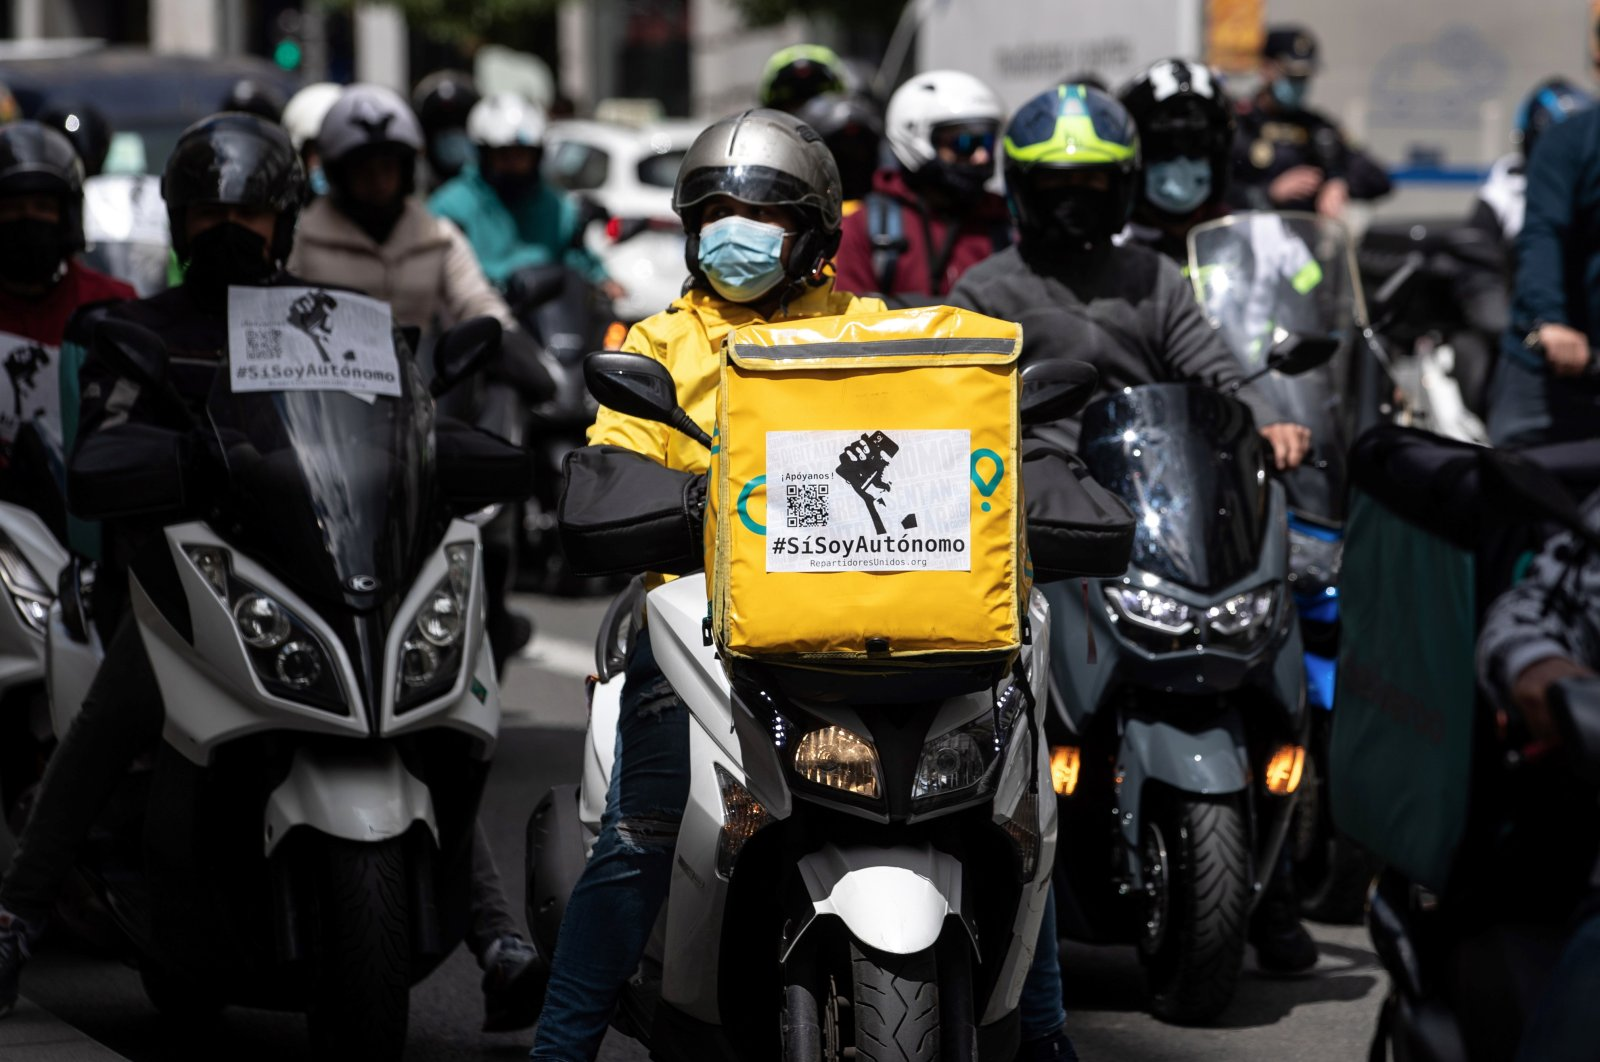 A group of delivery riders protests against the law approved by the government's Cabinet that regulates their activity in Madrid, Spain, May 11, 2021. (EPA Photo)